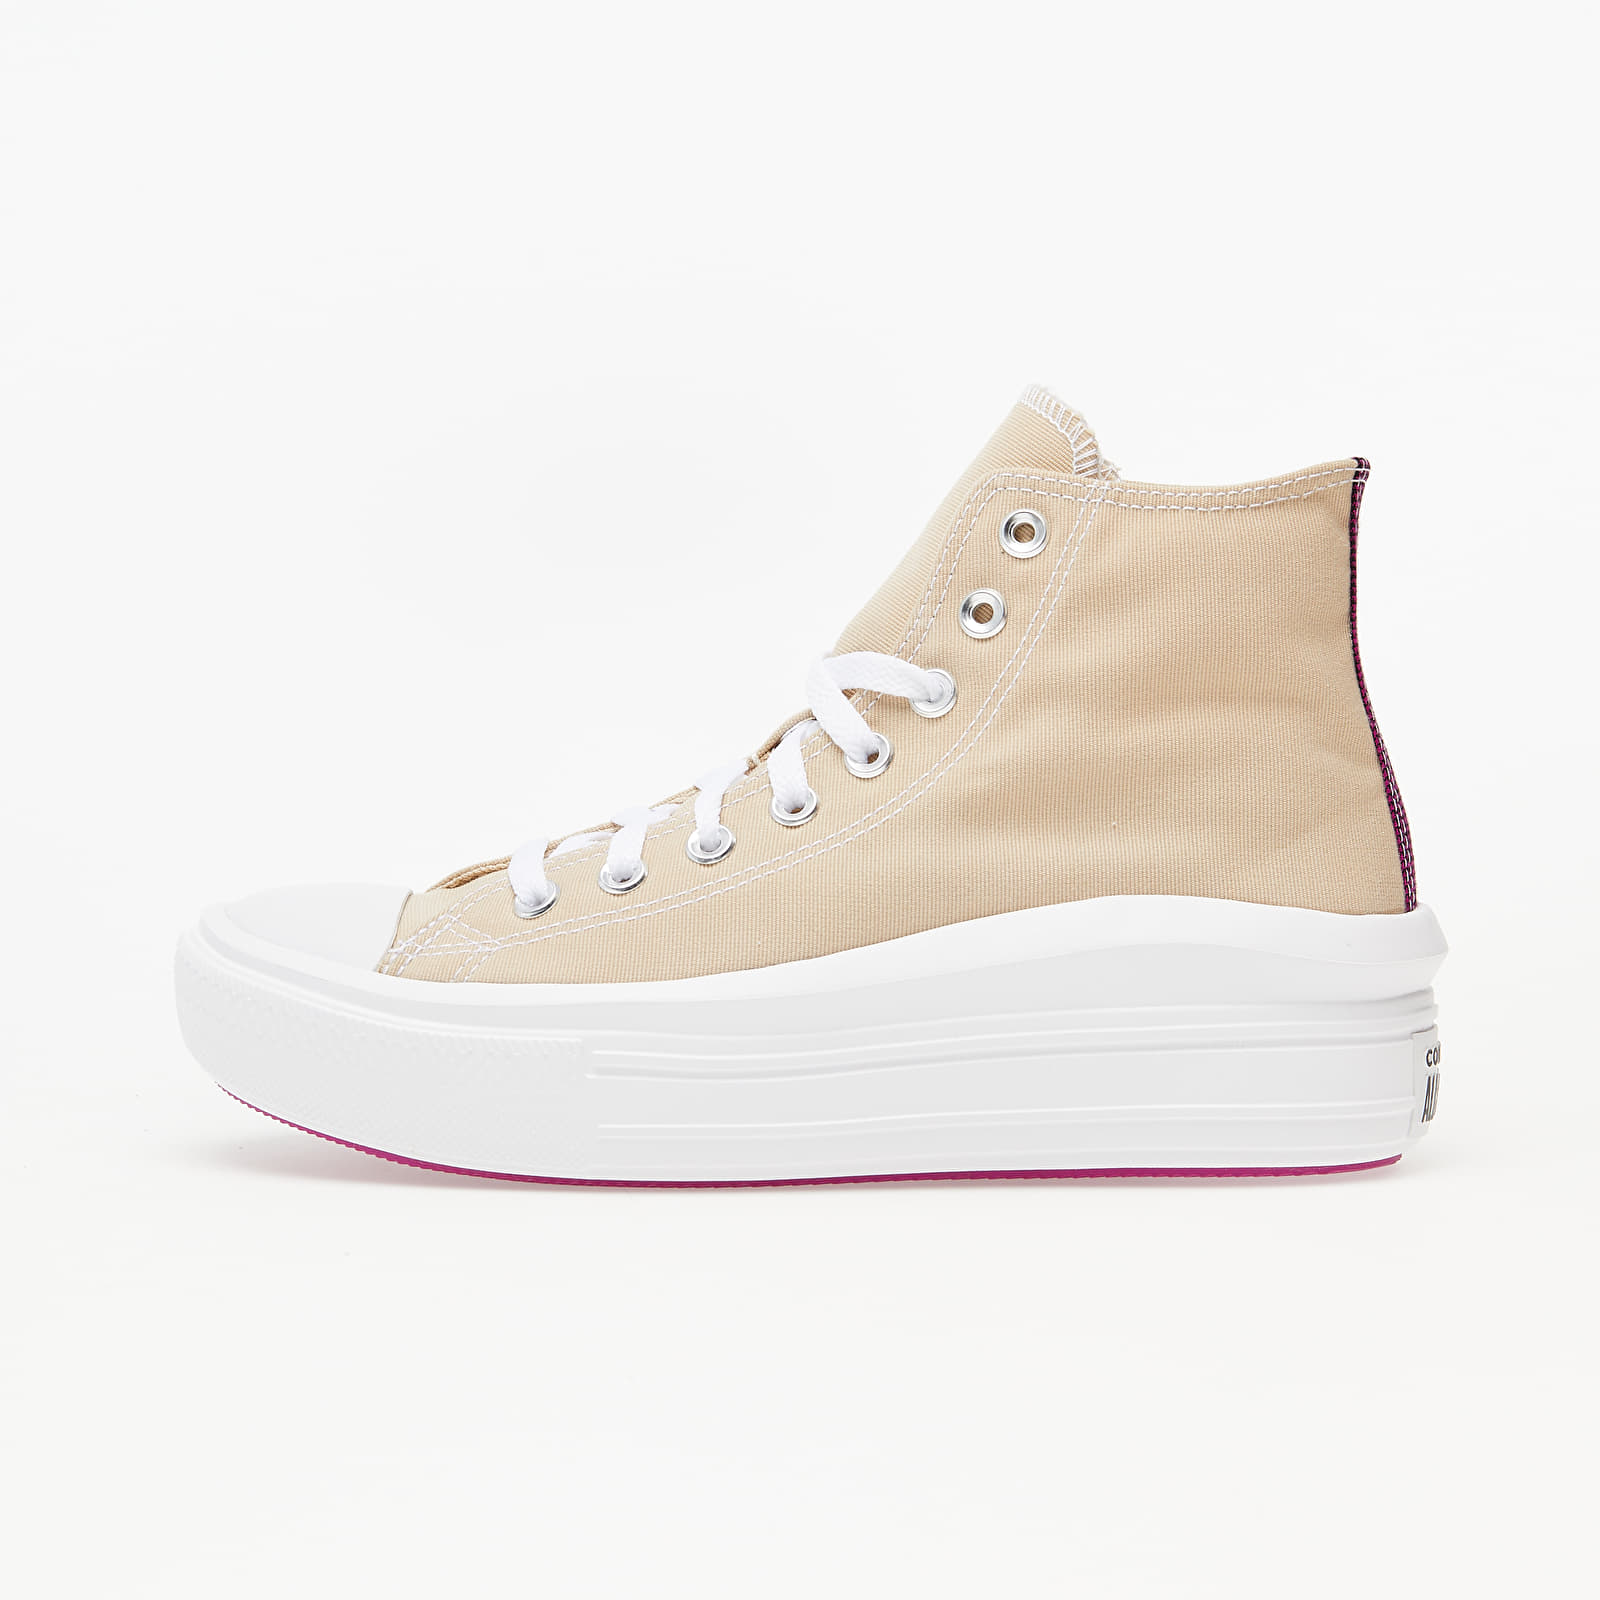 Chaussures et baskets femme Converse Chuck Taylor All Star Move Farro/ Cactus Flower/ White